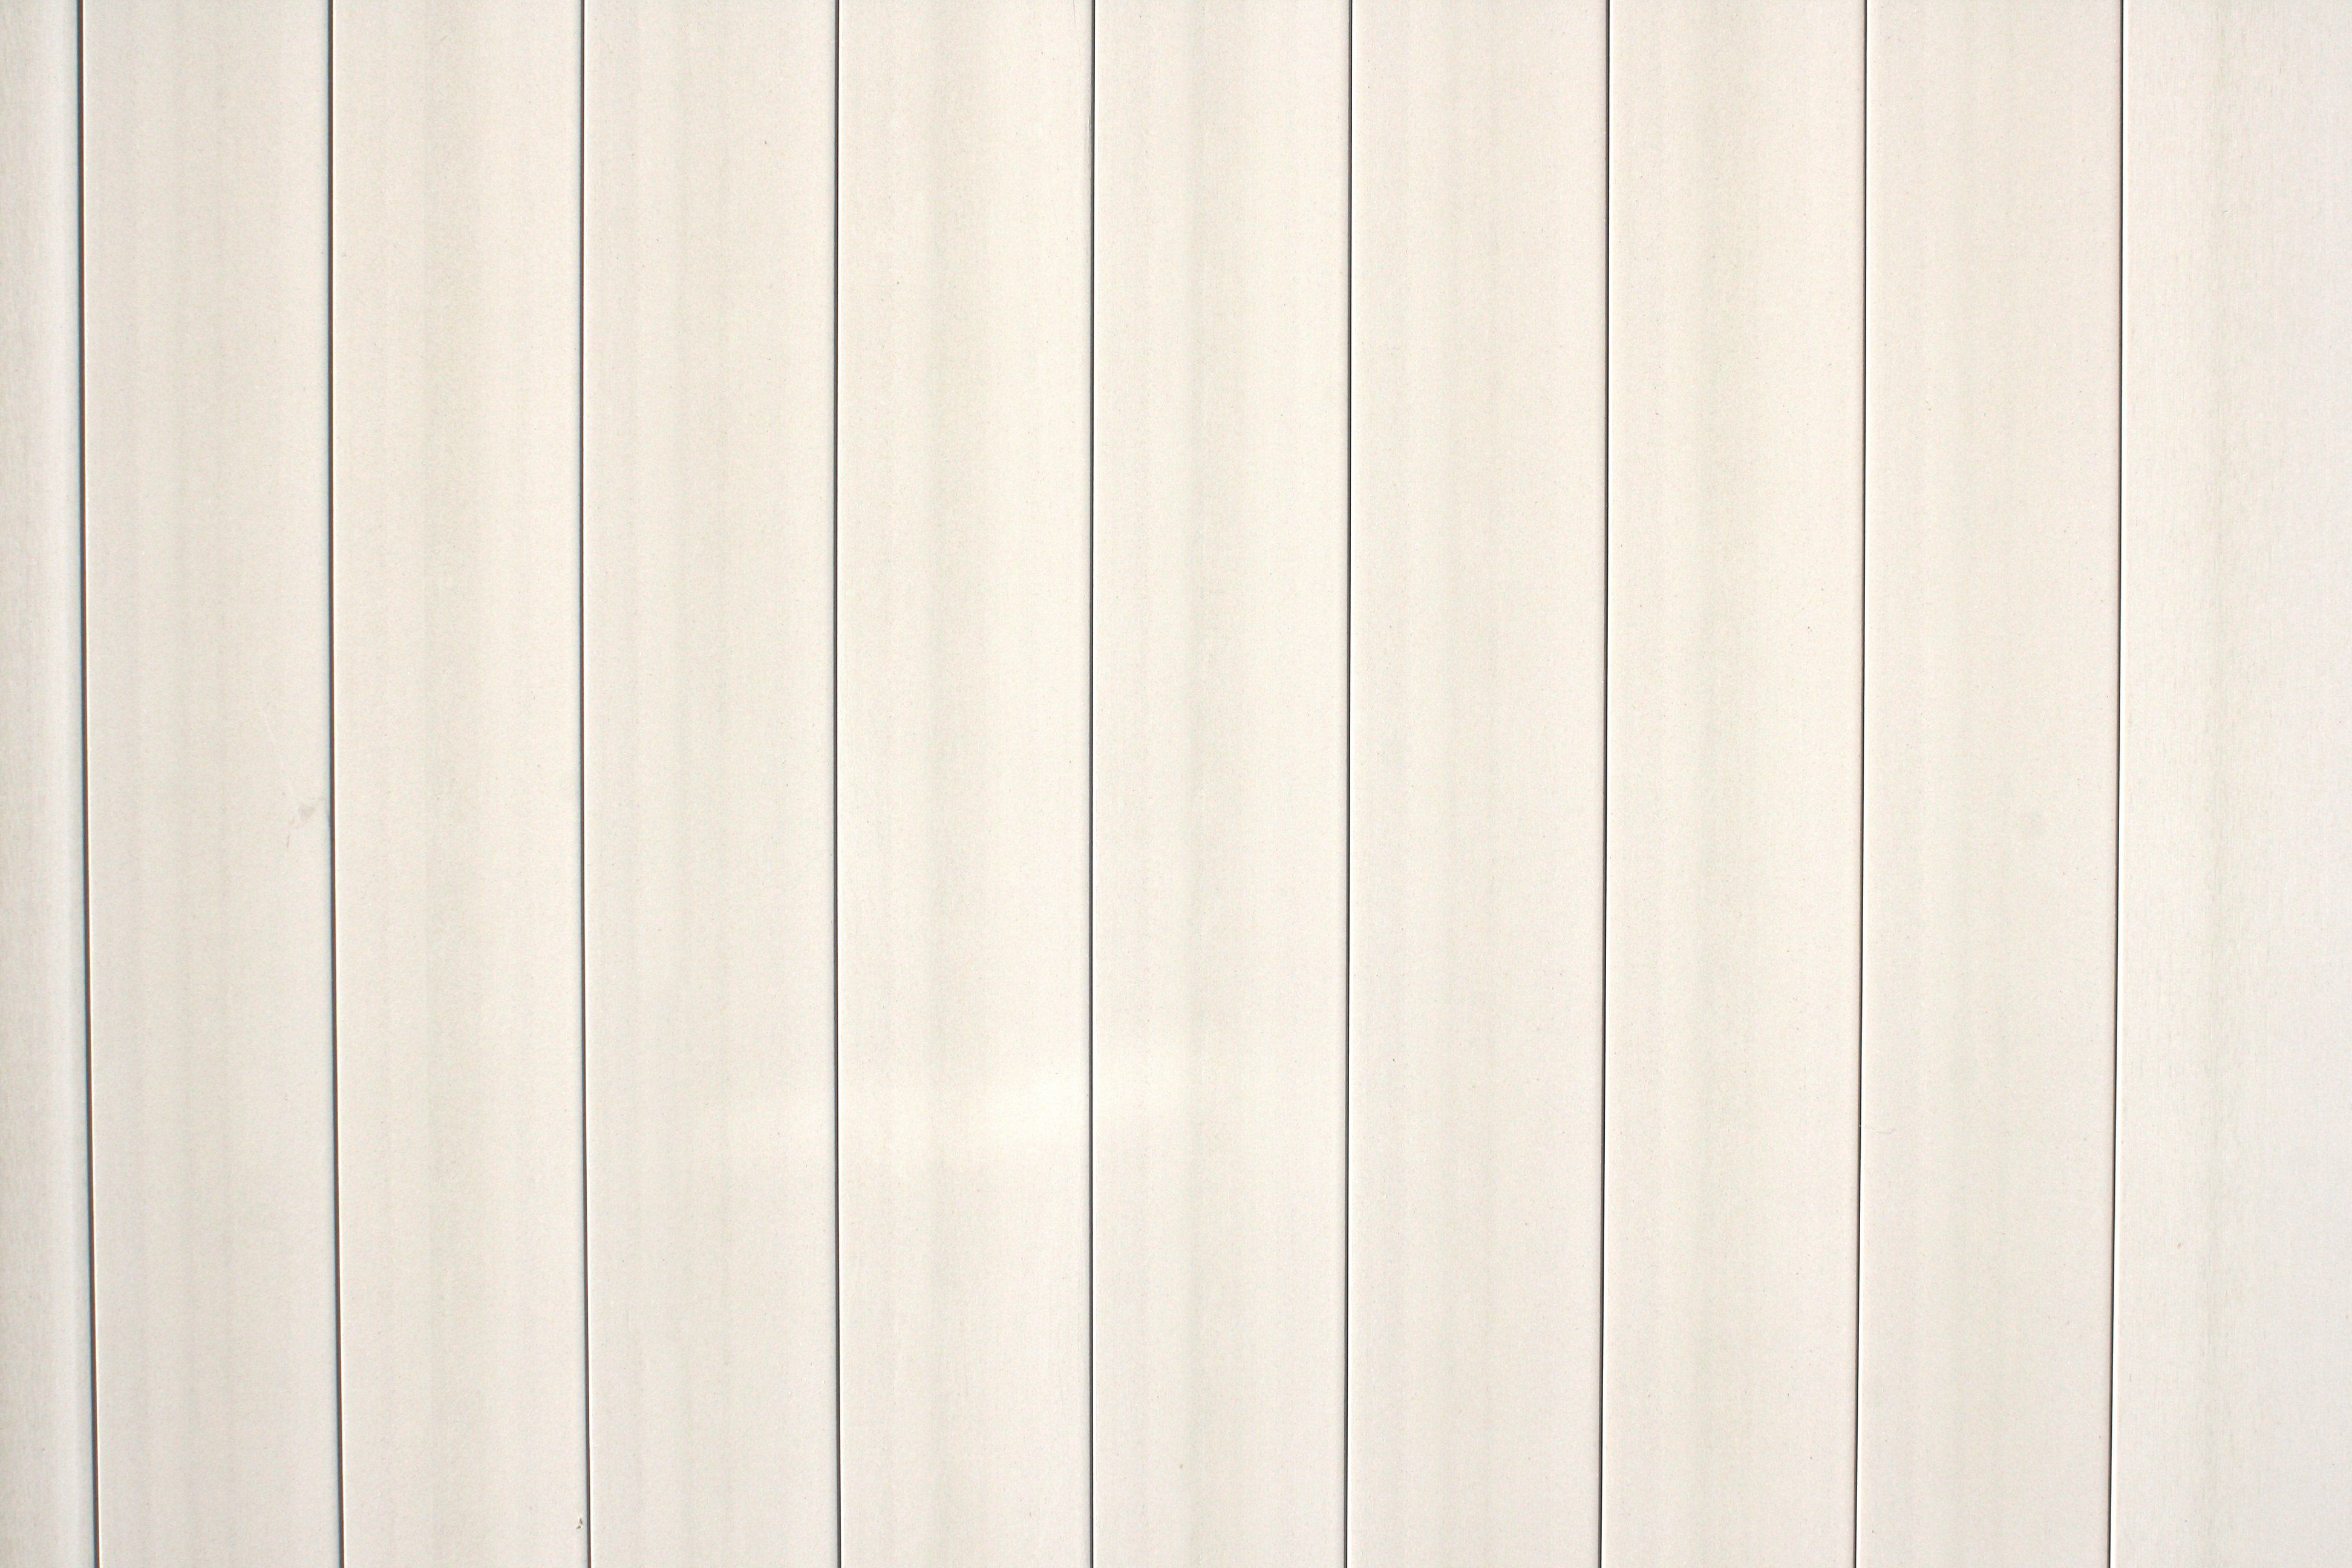 White Plastic Fence Boards Texture